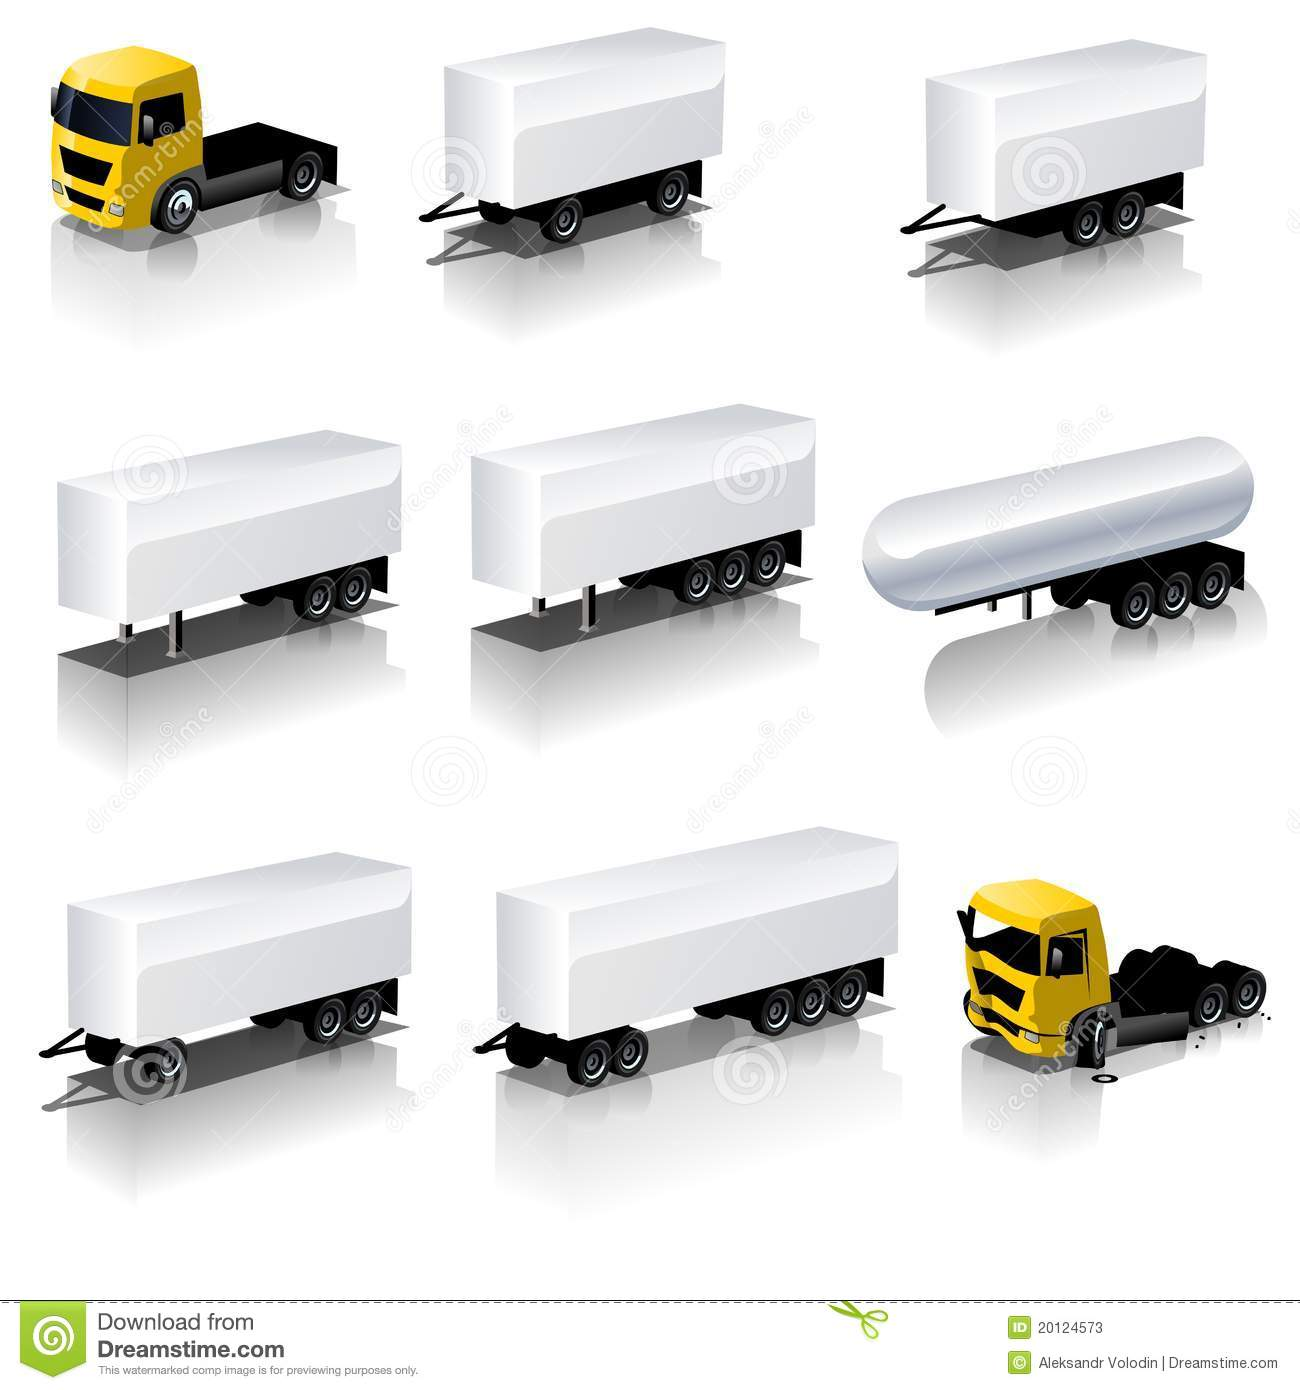 Stock Photography Truck Trailer Types Image16439062 in addition Mac Macsimizer Half Round End Dump 120131916 additionally Royalty Free Stock Photo Semi Trailer Truck Modern Light Background Image33115105 also Watch besides Stock Photo Trailer Truck Cargo Container Image15821250. on semi truck travel trailers